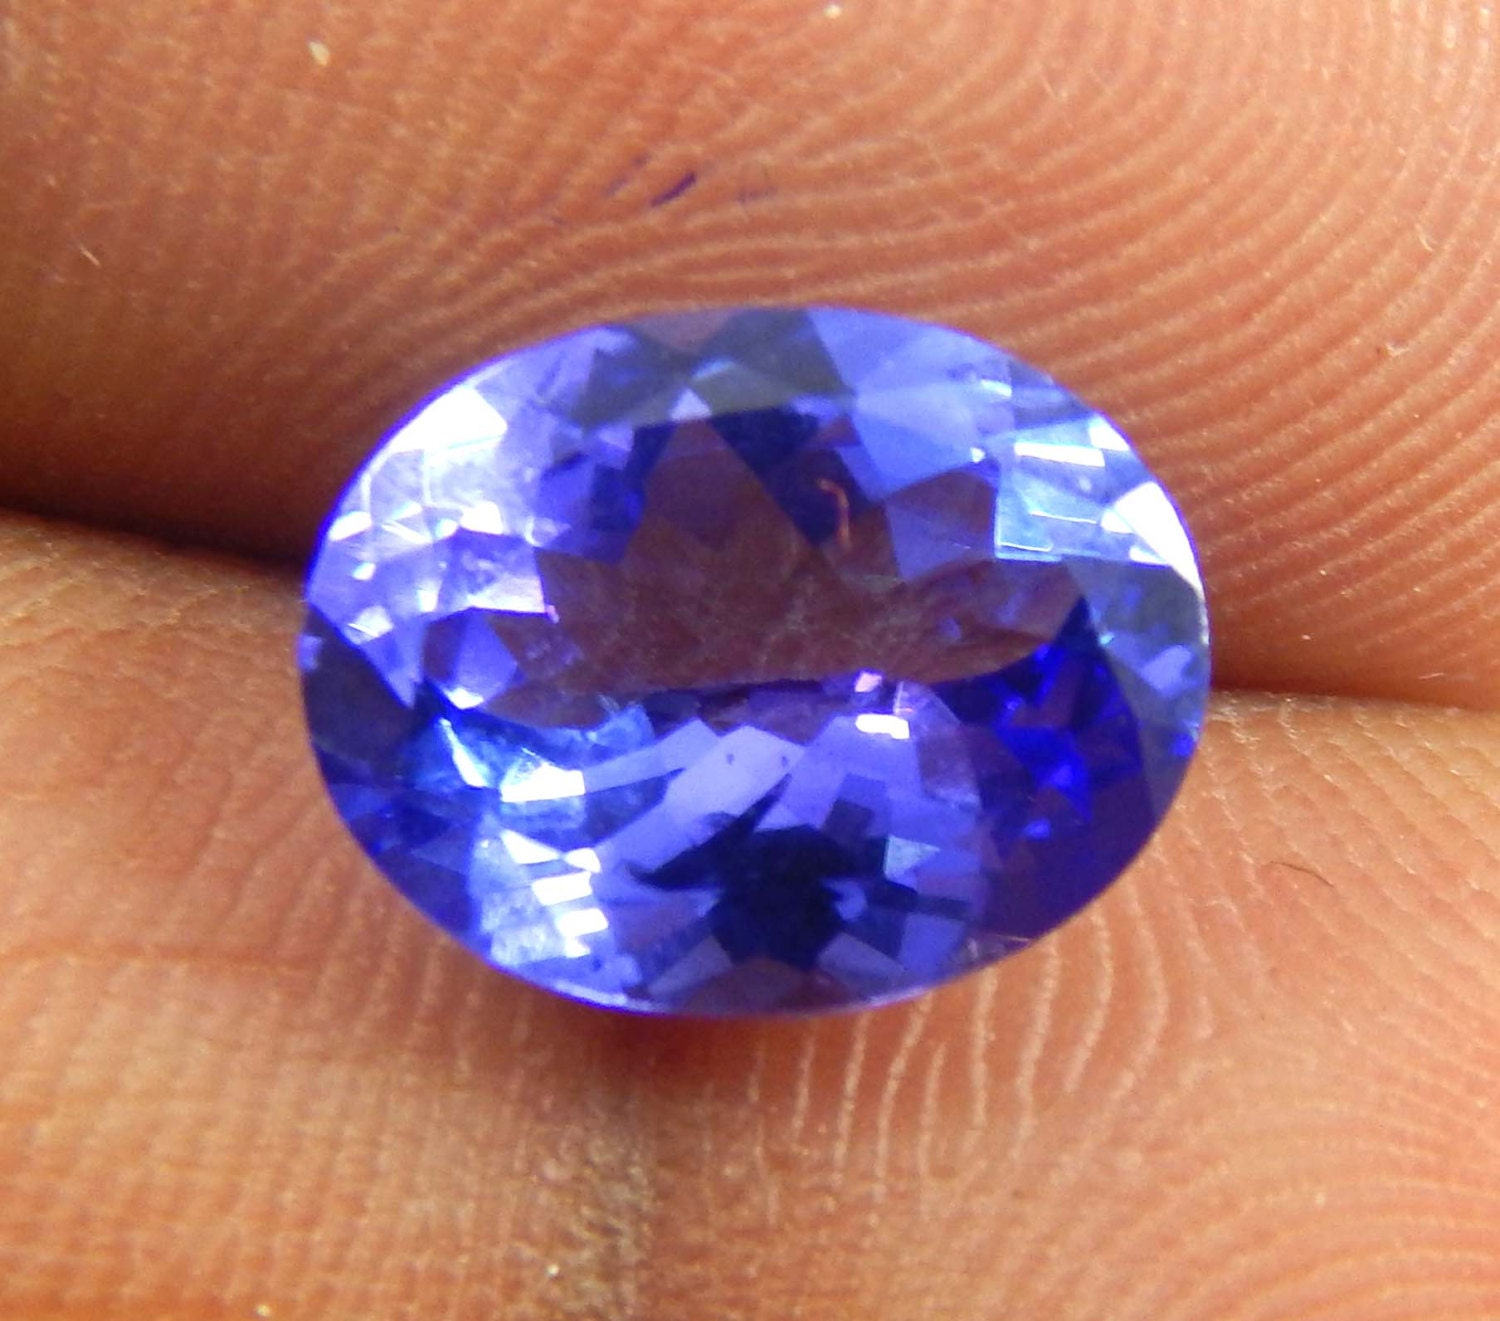 investment brilliant cut for birthstone tanzanite december grade the round